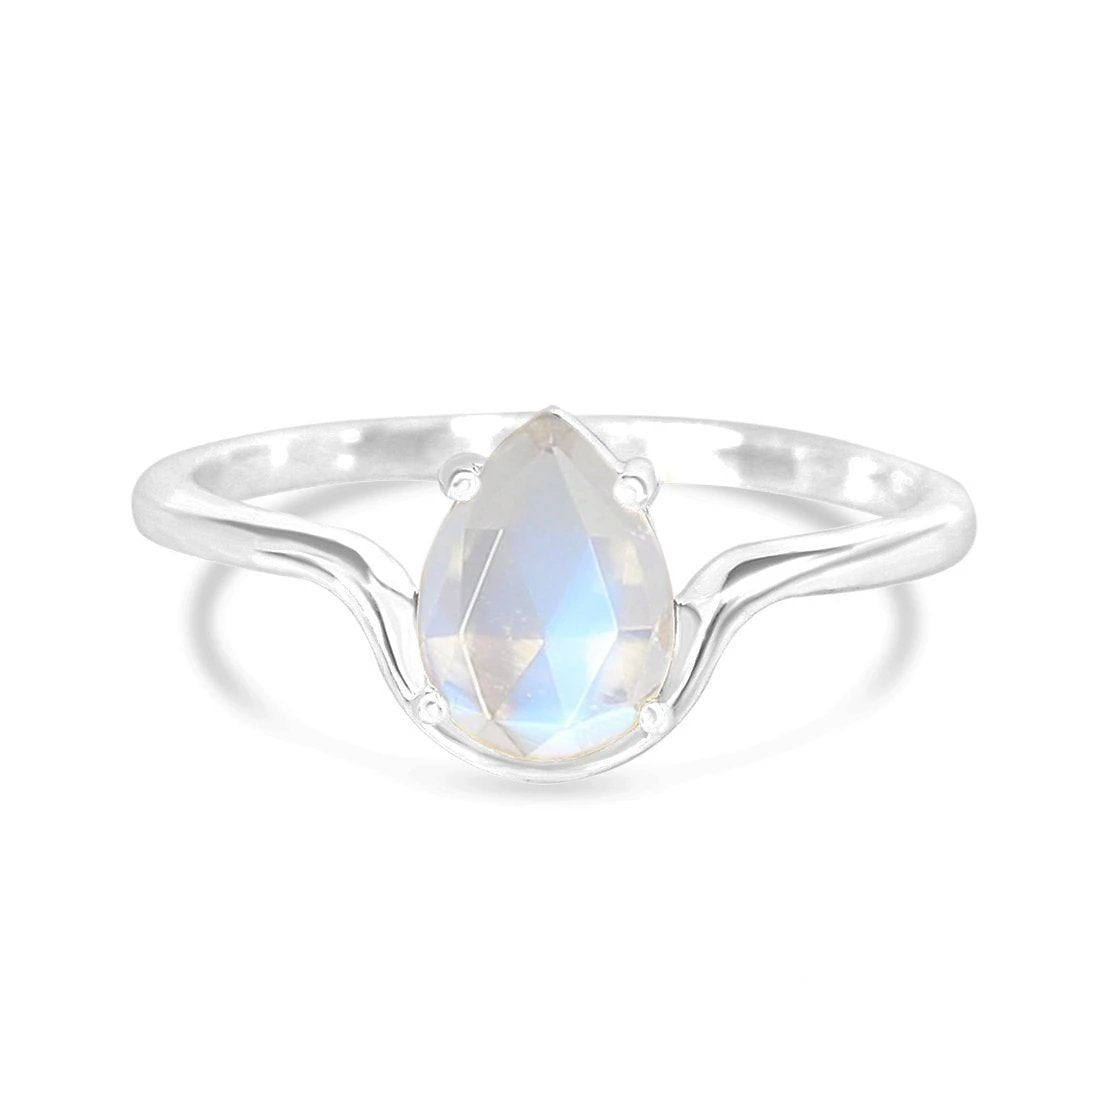 Moonstone Ring-Ecstasy-S Moonstone Ring 925 SILVER & MOONSTONE 10 Silver Pear-6x8 mm